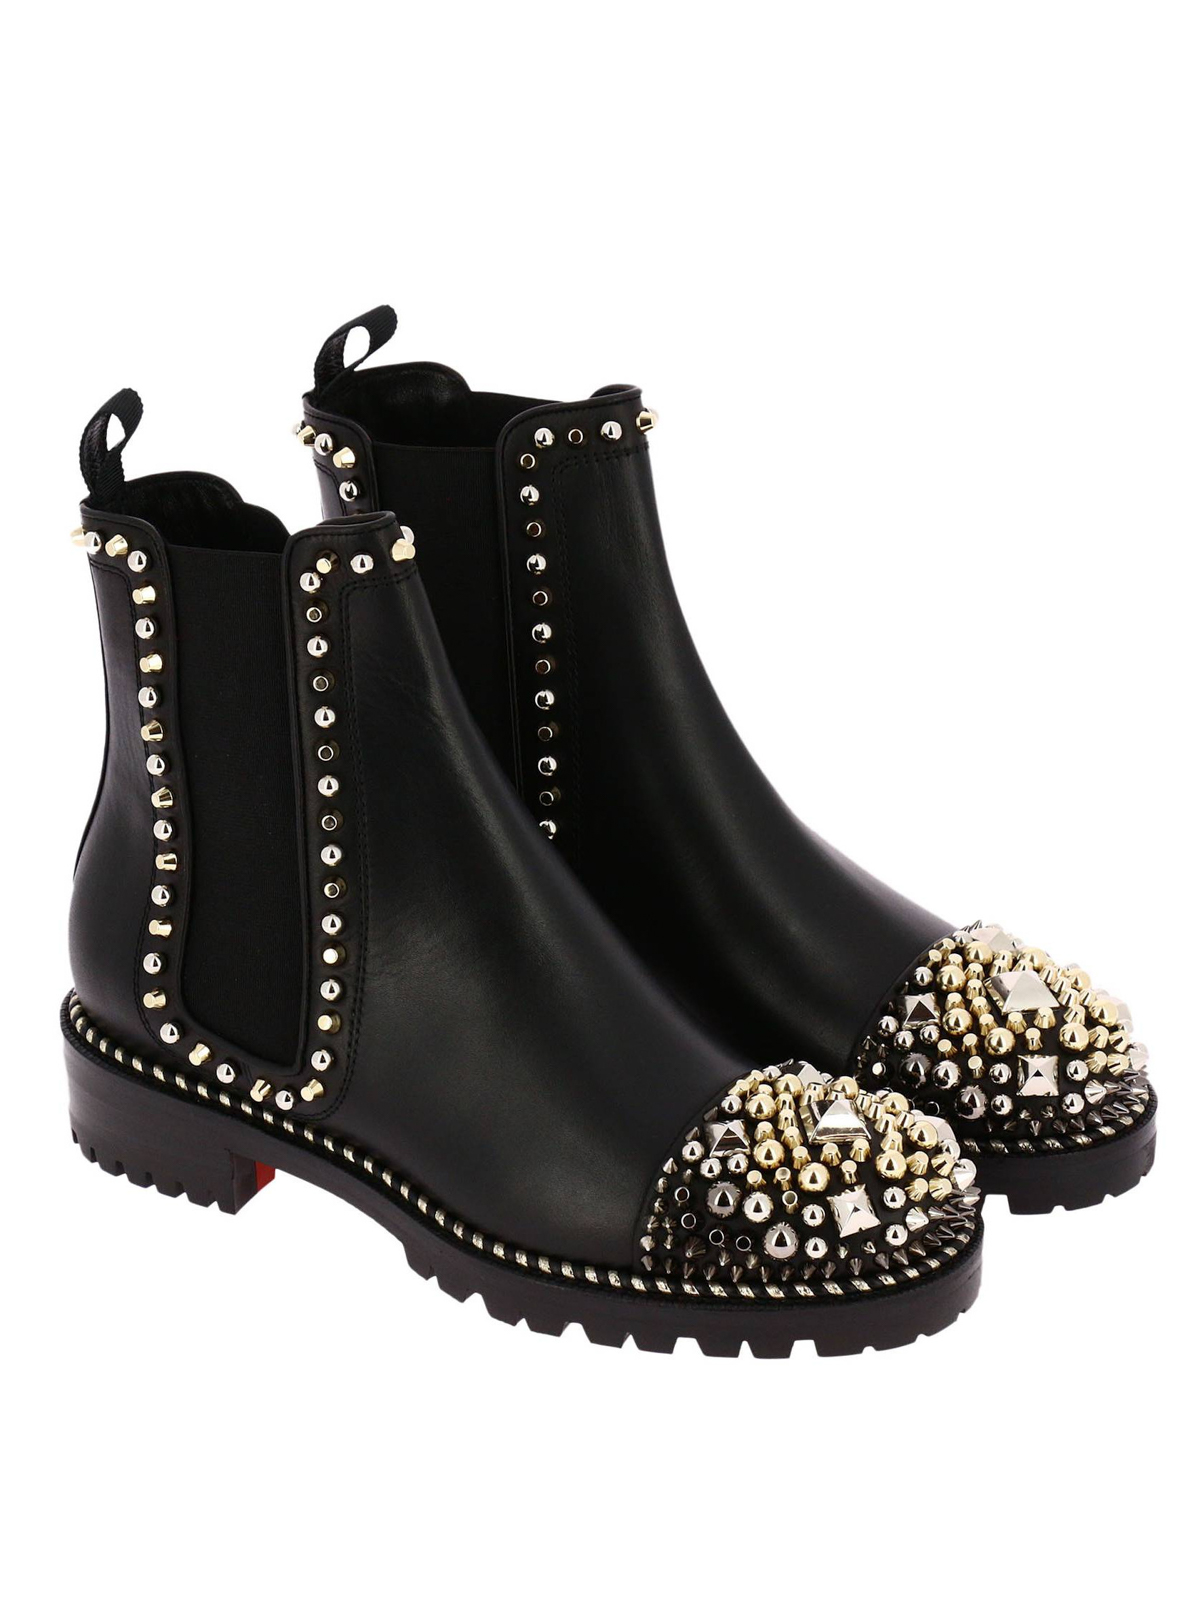 acheter populaire 64fda 018a0 Christian Louboutin - Bottines - Chasse A Clou - Bottines ...